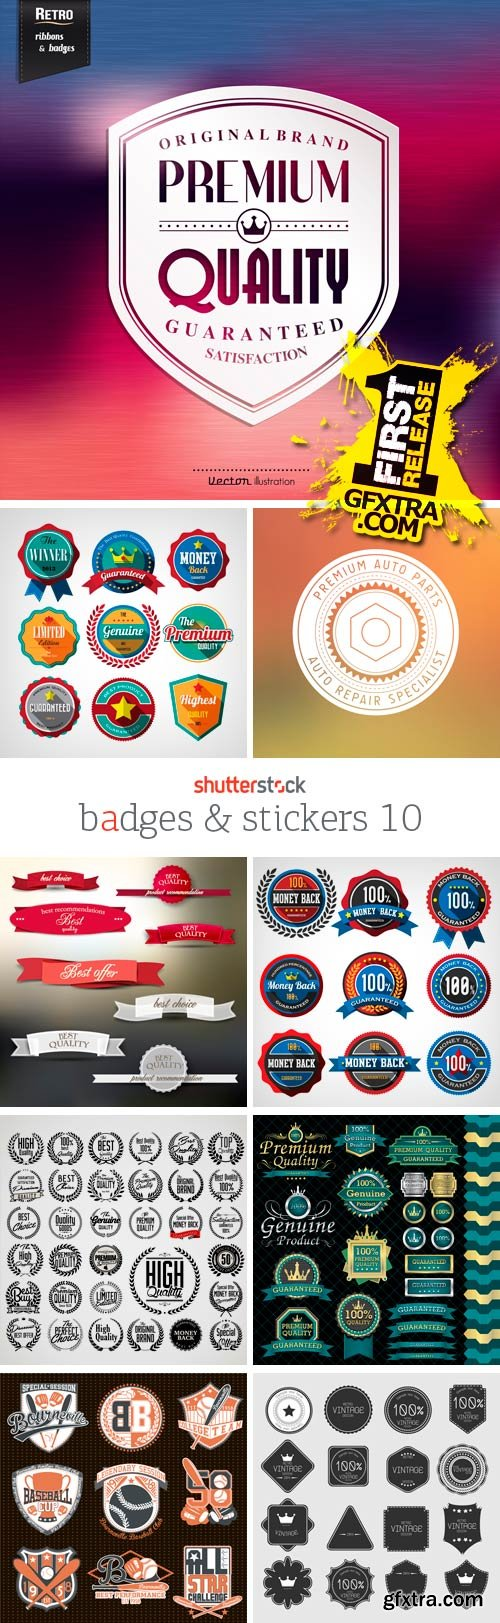 Amazing SS - Badges & Stickers 10, 25xEPS